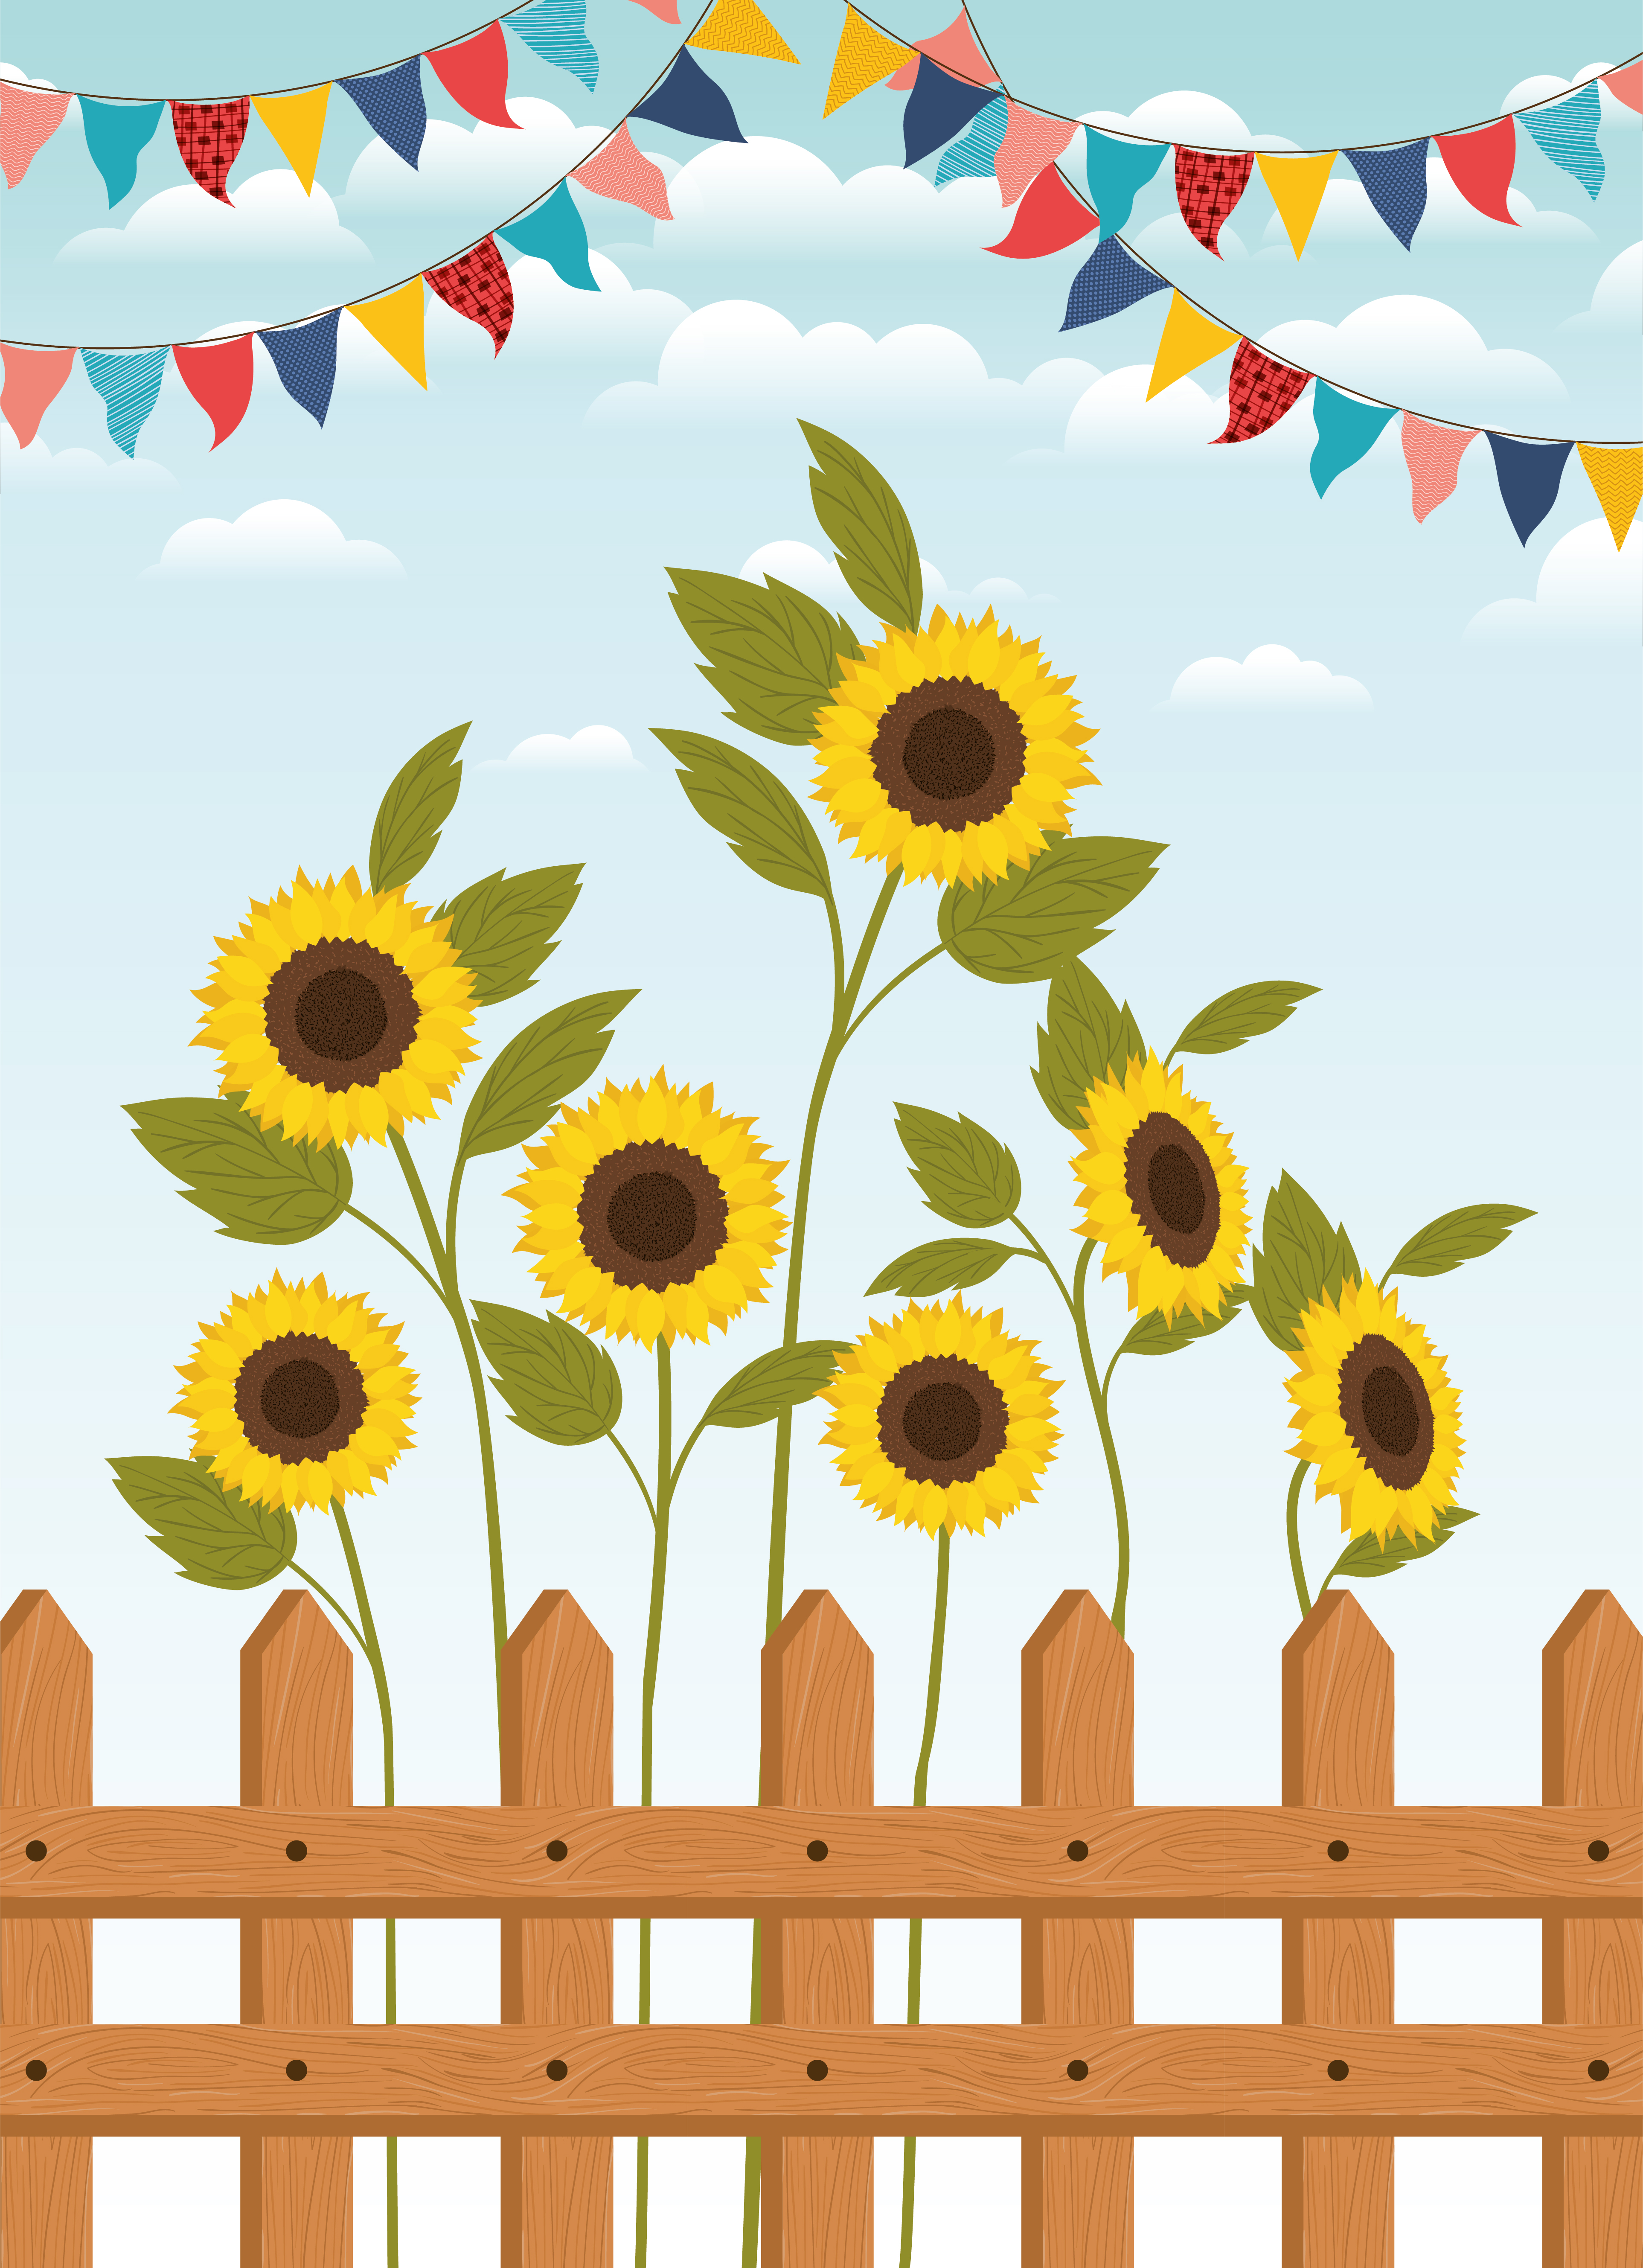 festa junina with fence and sunflowers garden - Download ...